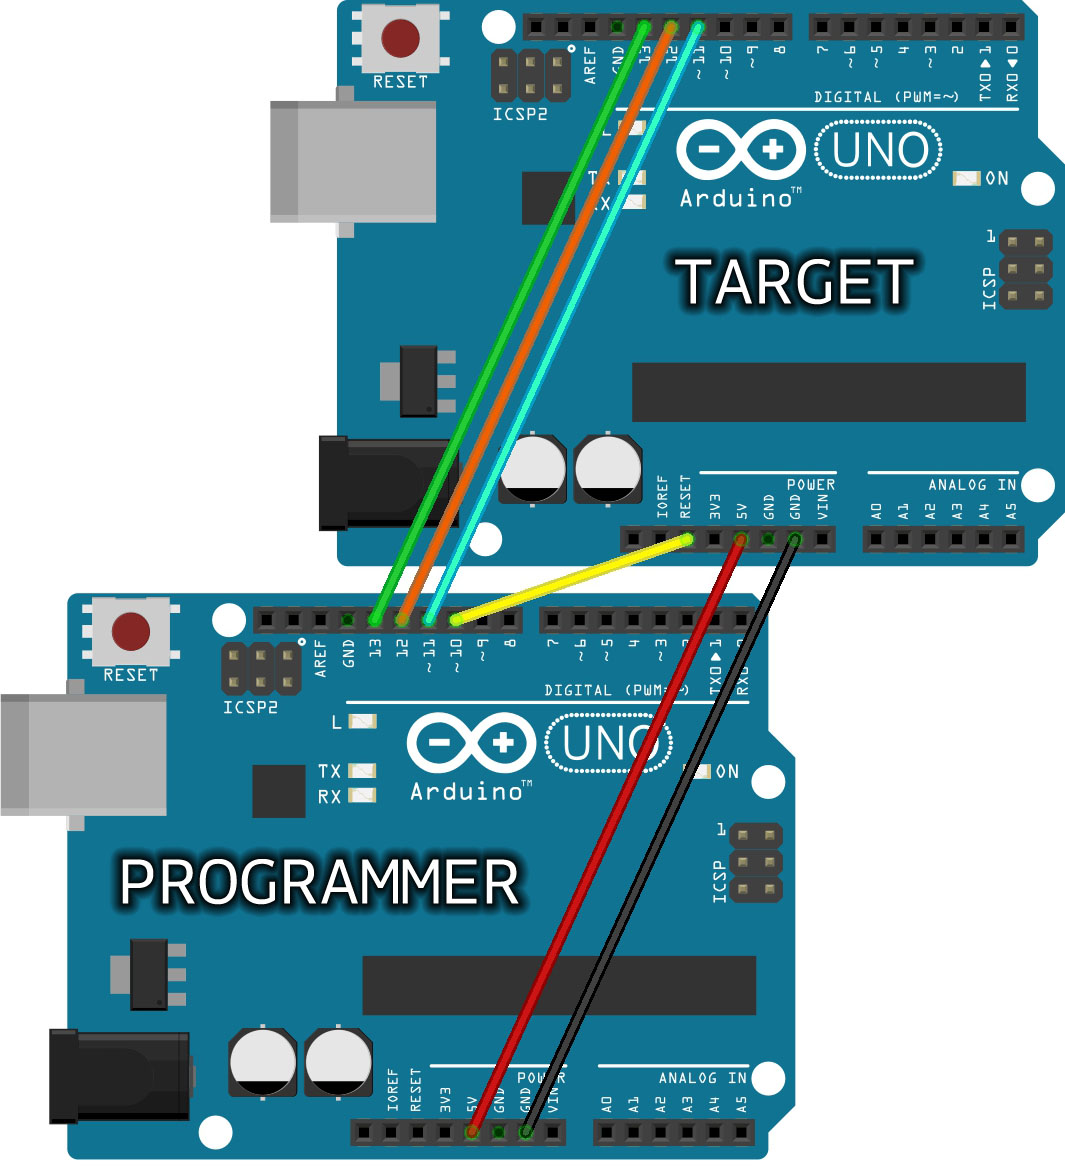 Arduino Arduinoisp Serial Avr And Pic Programmer Are Connecting Two Uno Boards For Bootloader Burning With The Old Style Connections Top Board Is Target Bottom